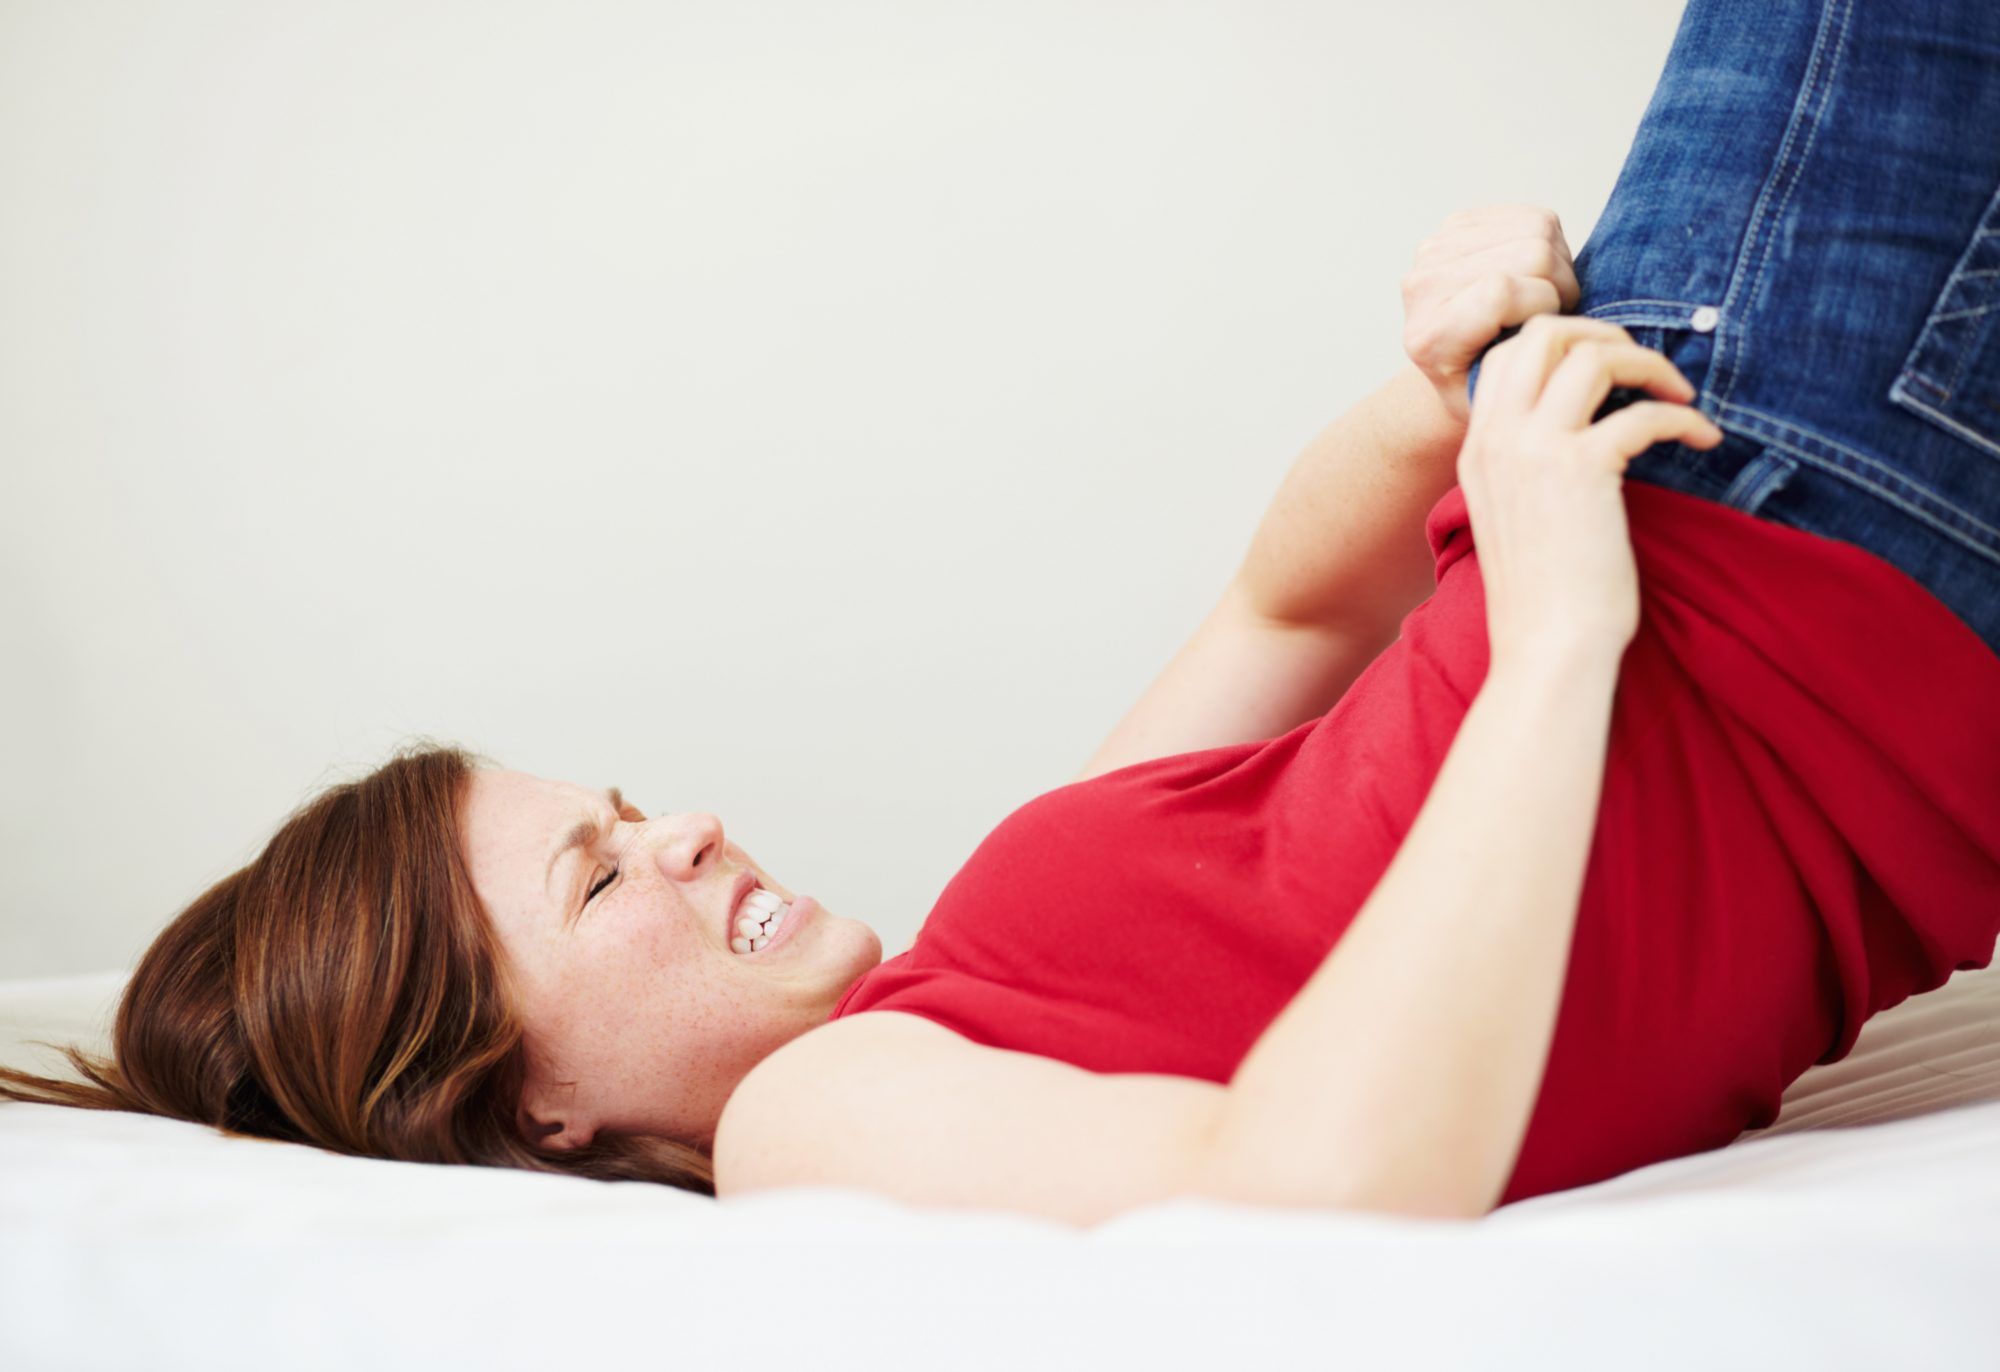 Woman Struggling to Pull Jeans Up